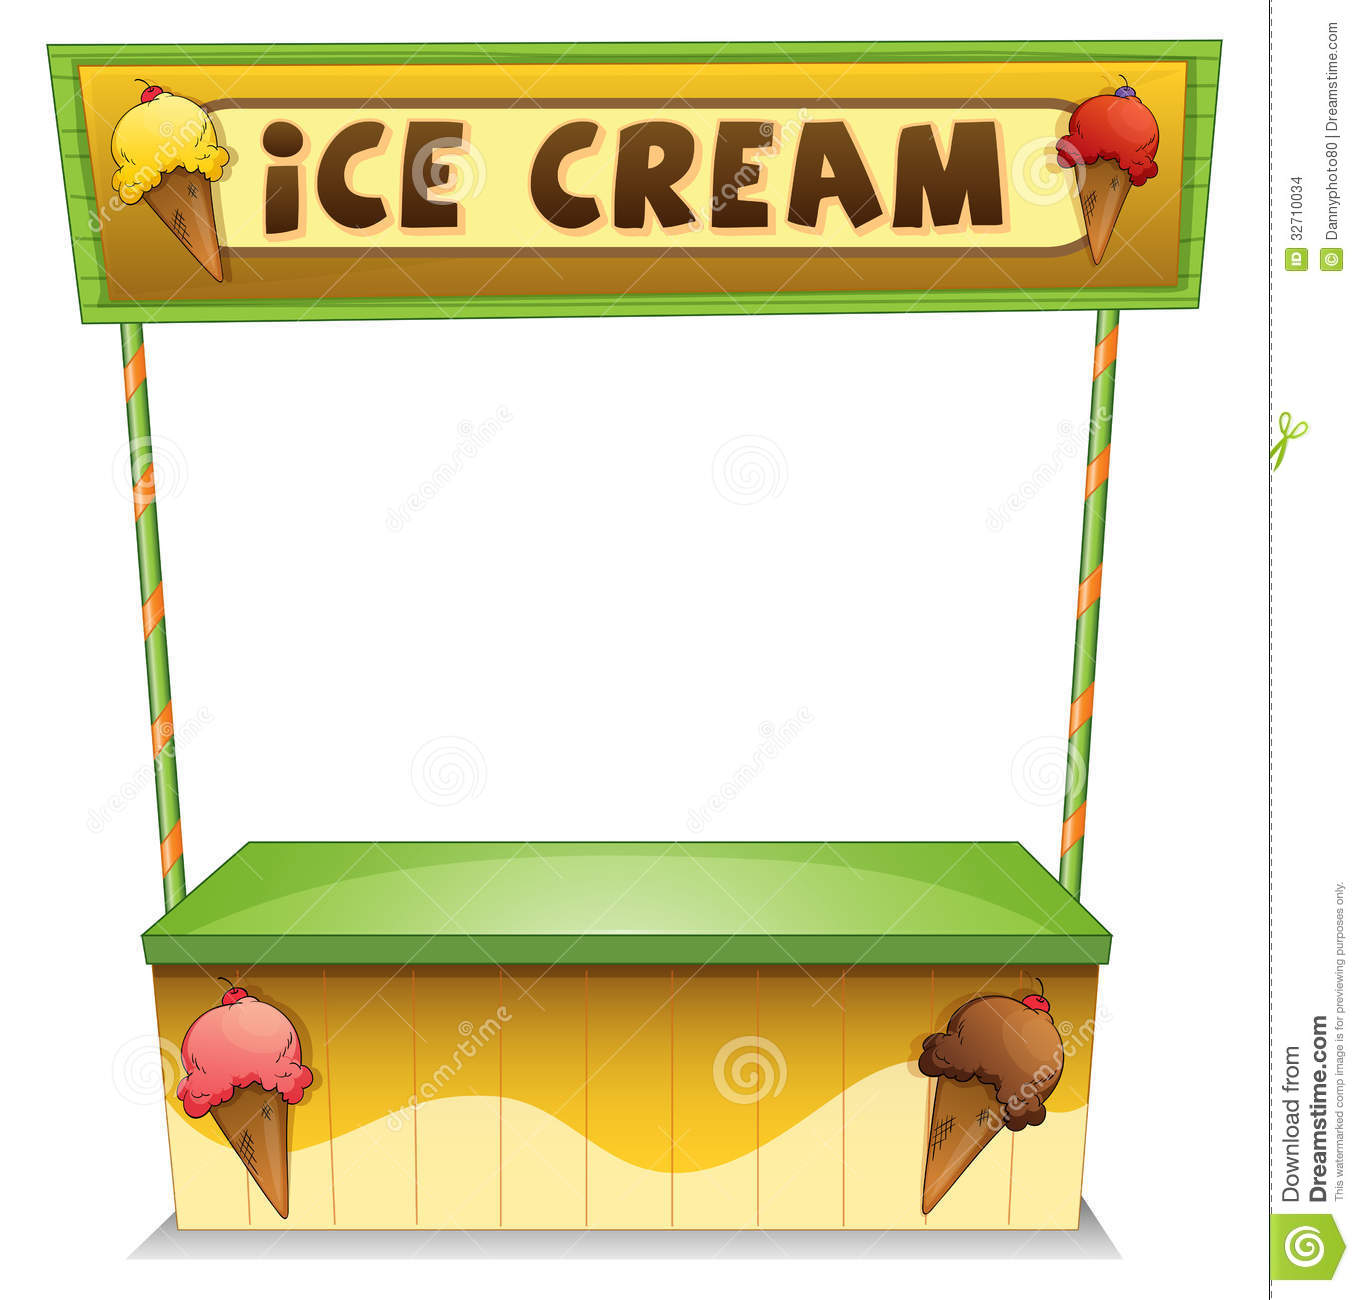 Illustration of an ice cream stand on a white background.